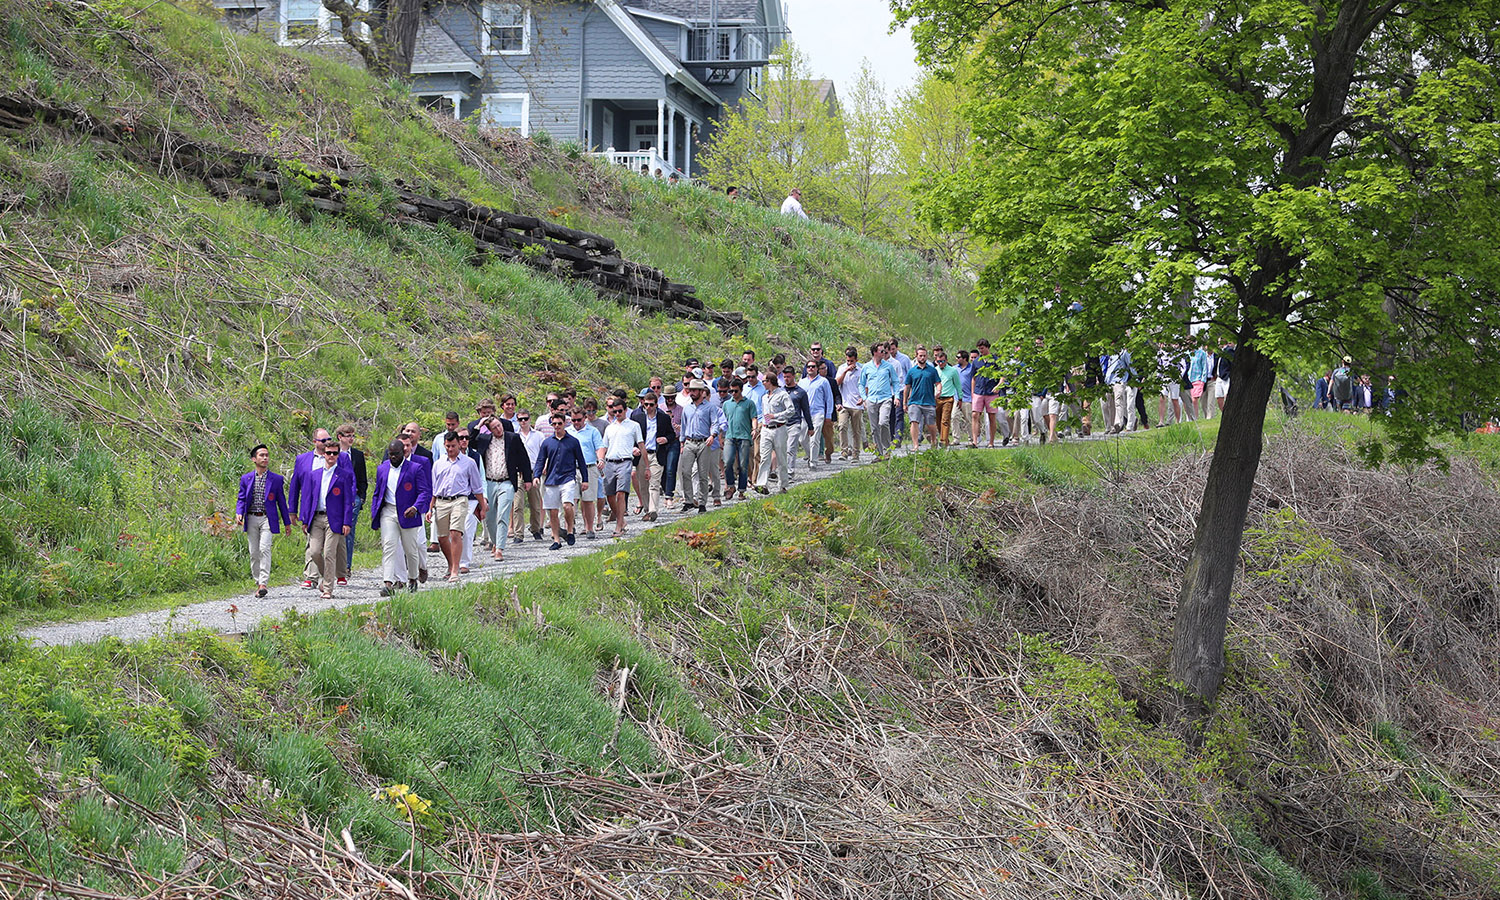 Members of the Druid Honor Society lead the Hobart College Class of 2017 process down the hill to Bozzuto Boathouse for the Hobart Launch.